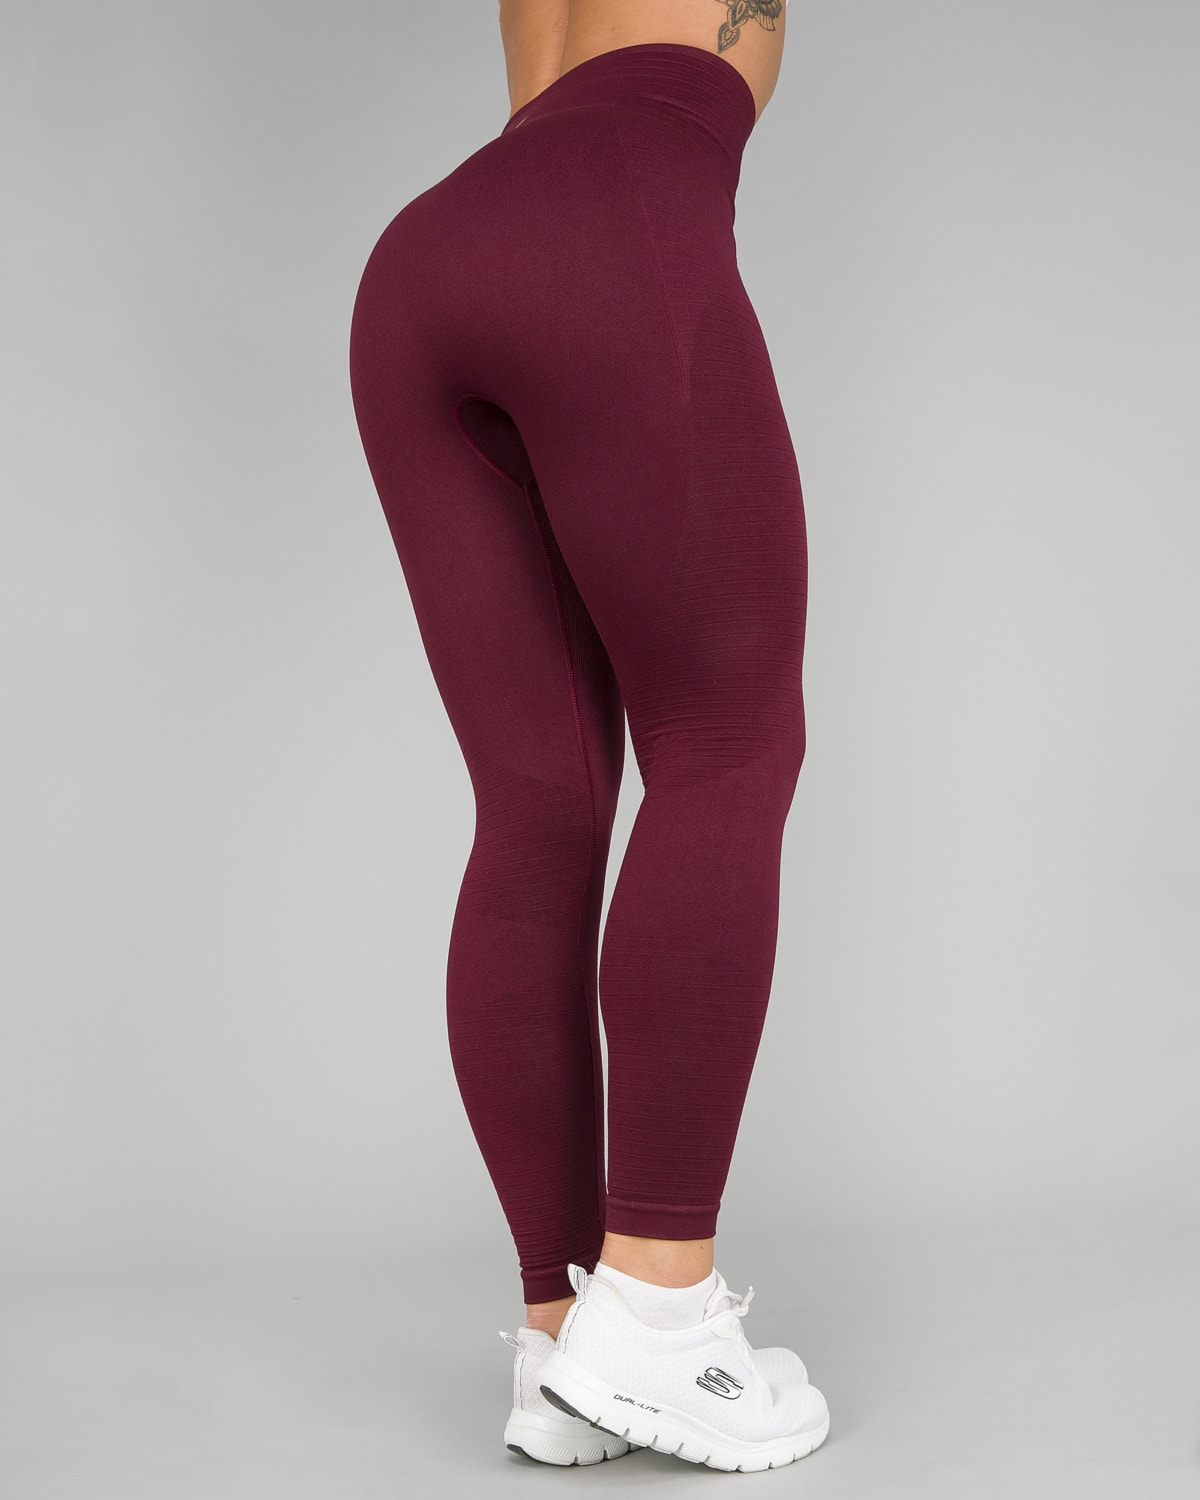 Jerf Gela 2.0 tights Maroon1